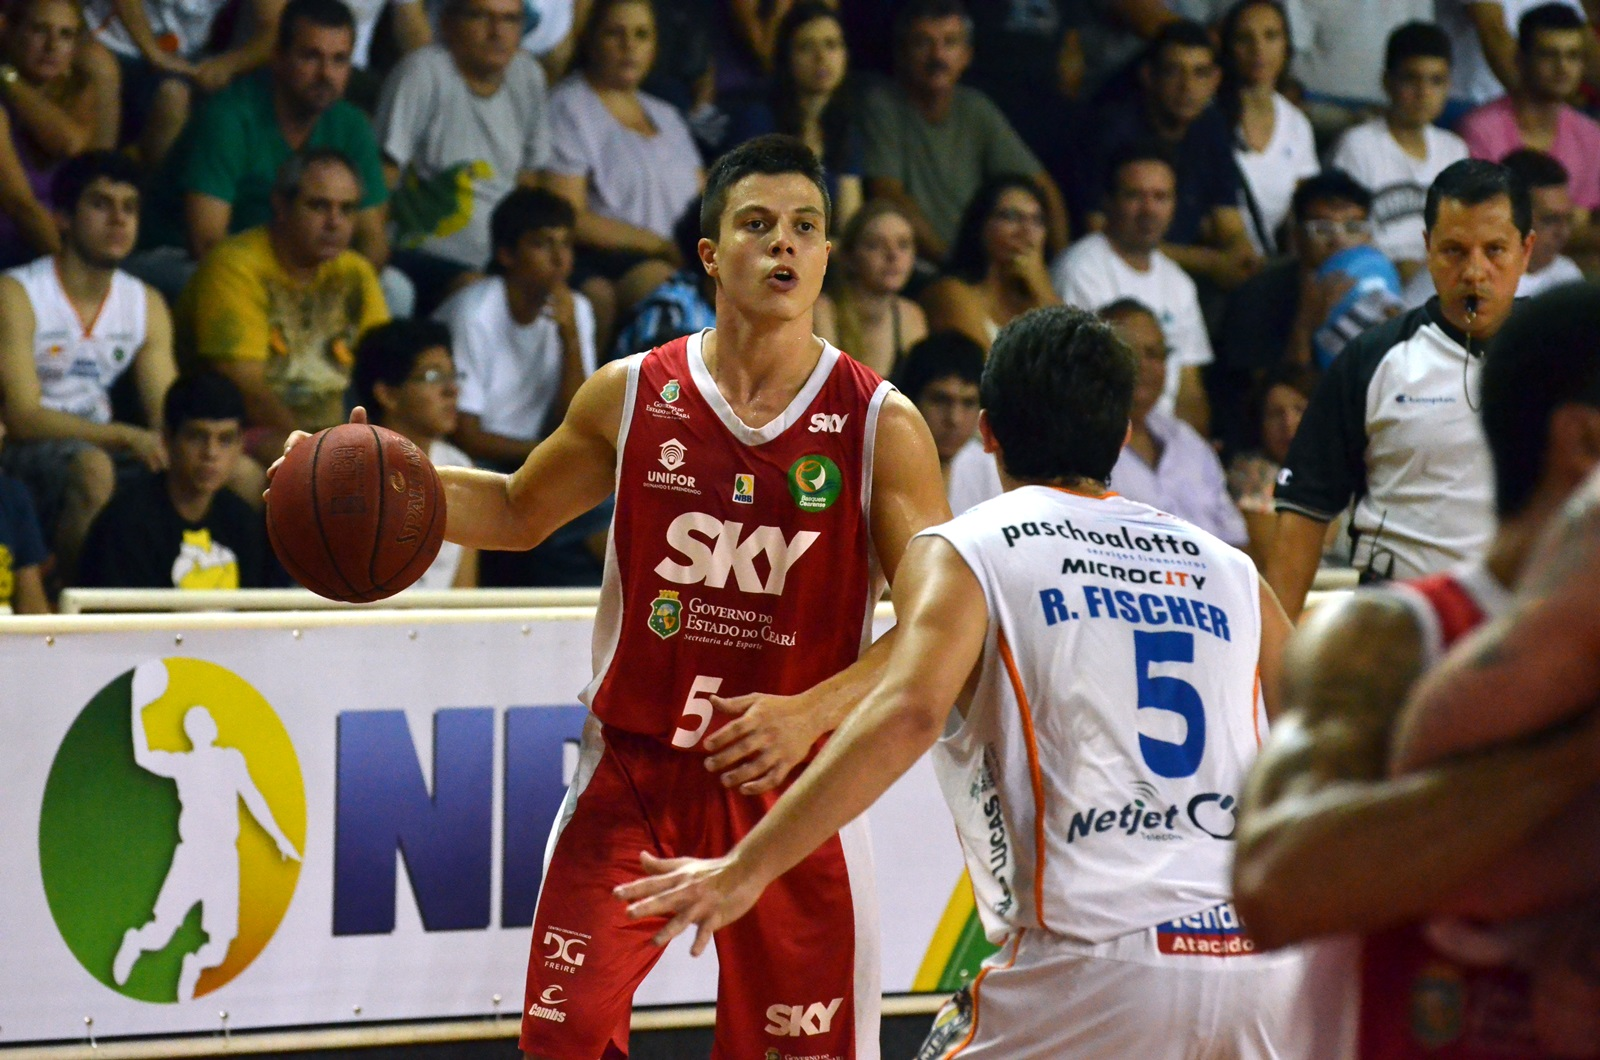 Davi, do Basquete Cearense, e Ricardo Fischer, do Bauru